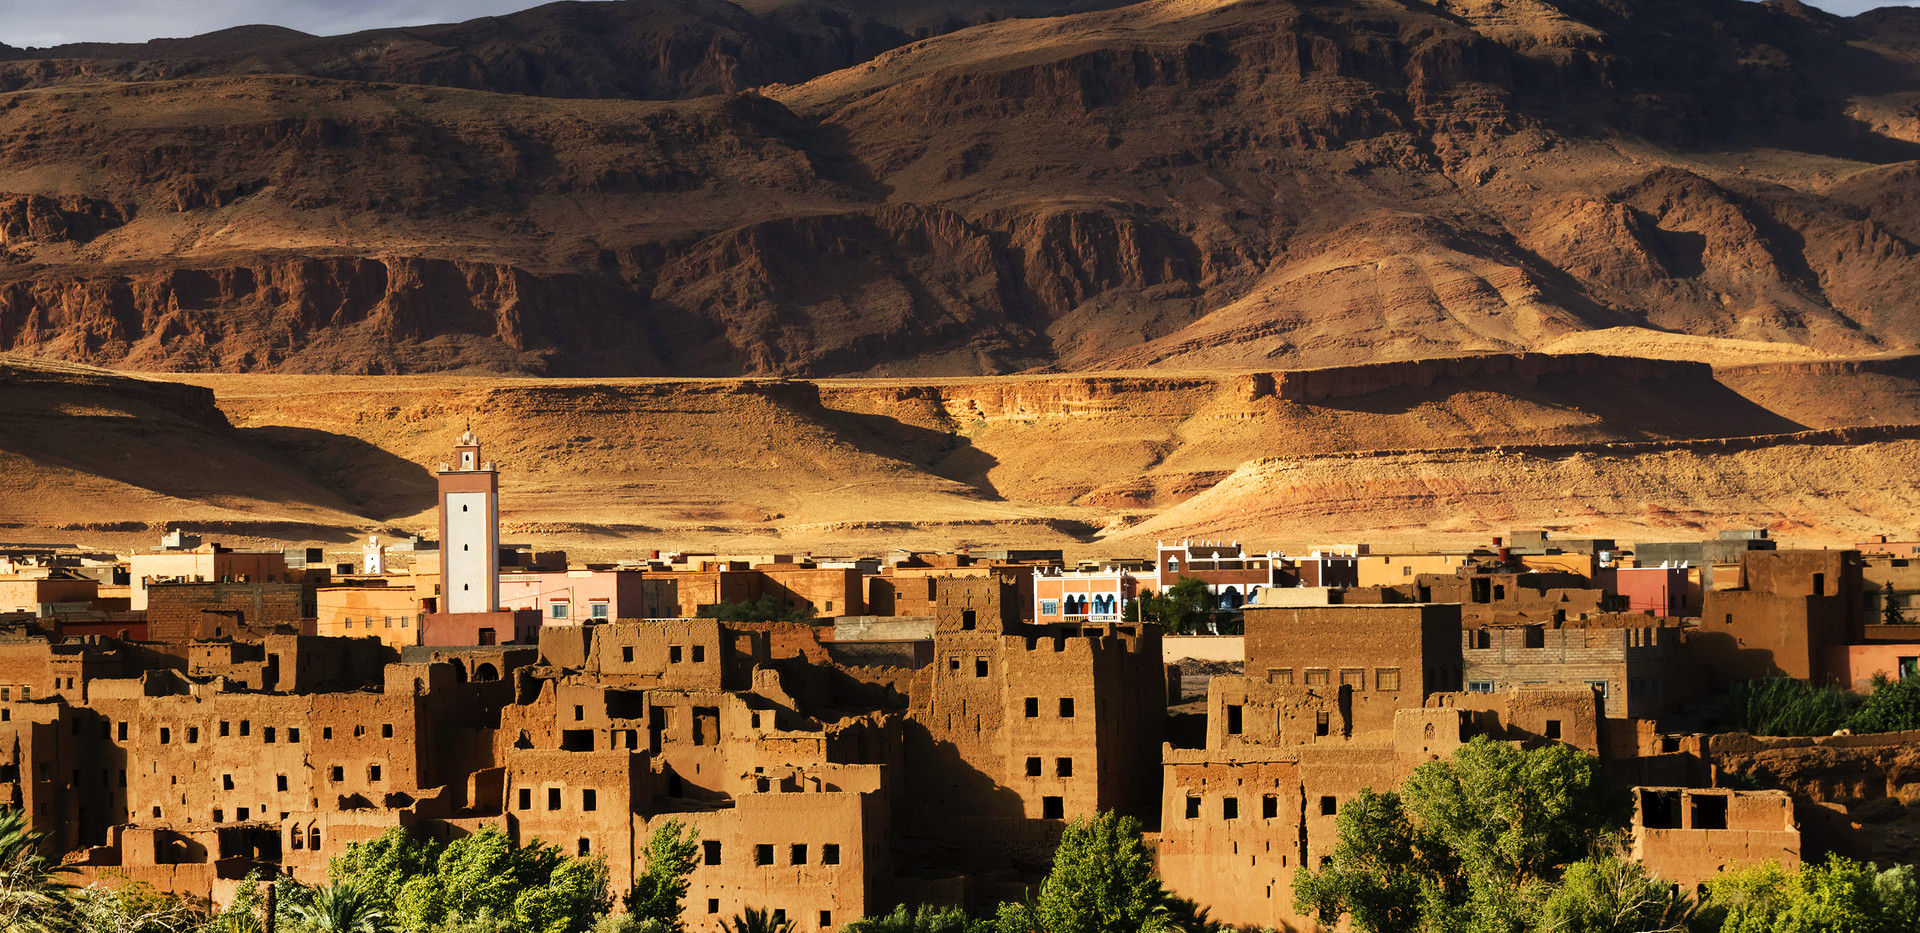 Town and oasis of Tinerhir, Morocco, Afr